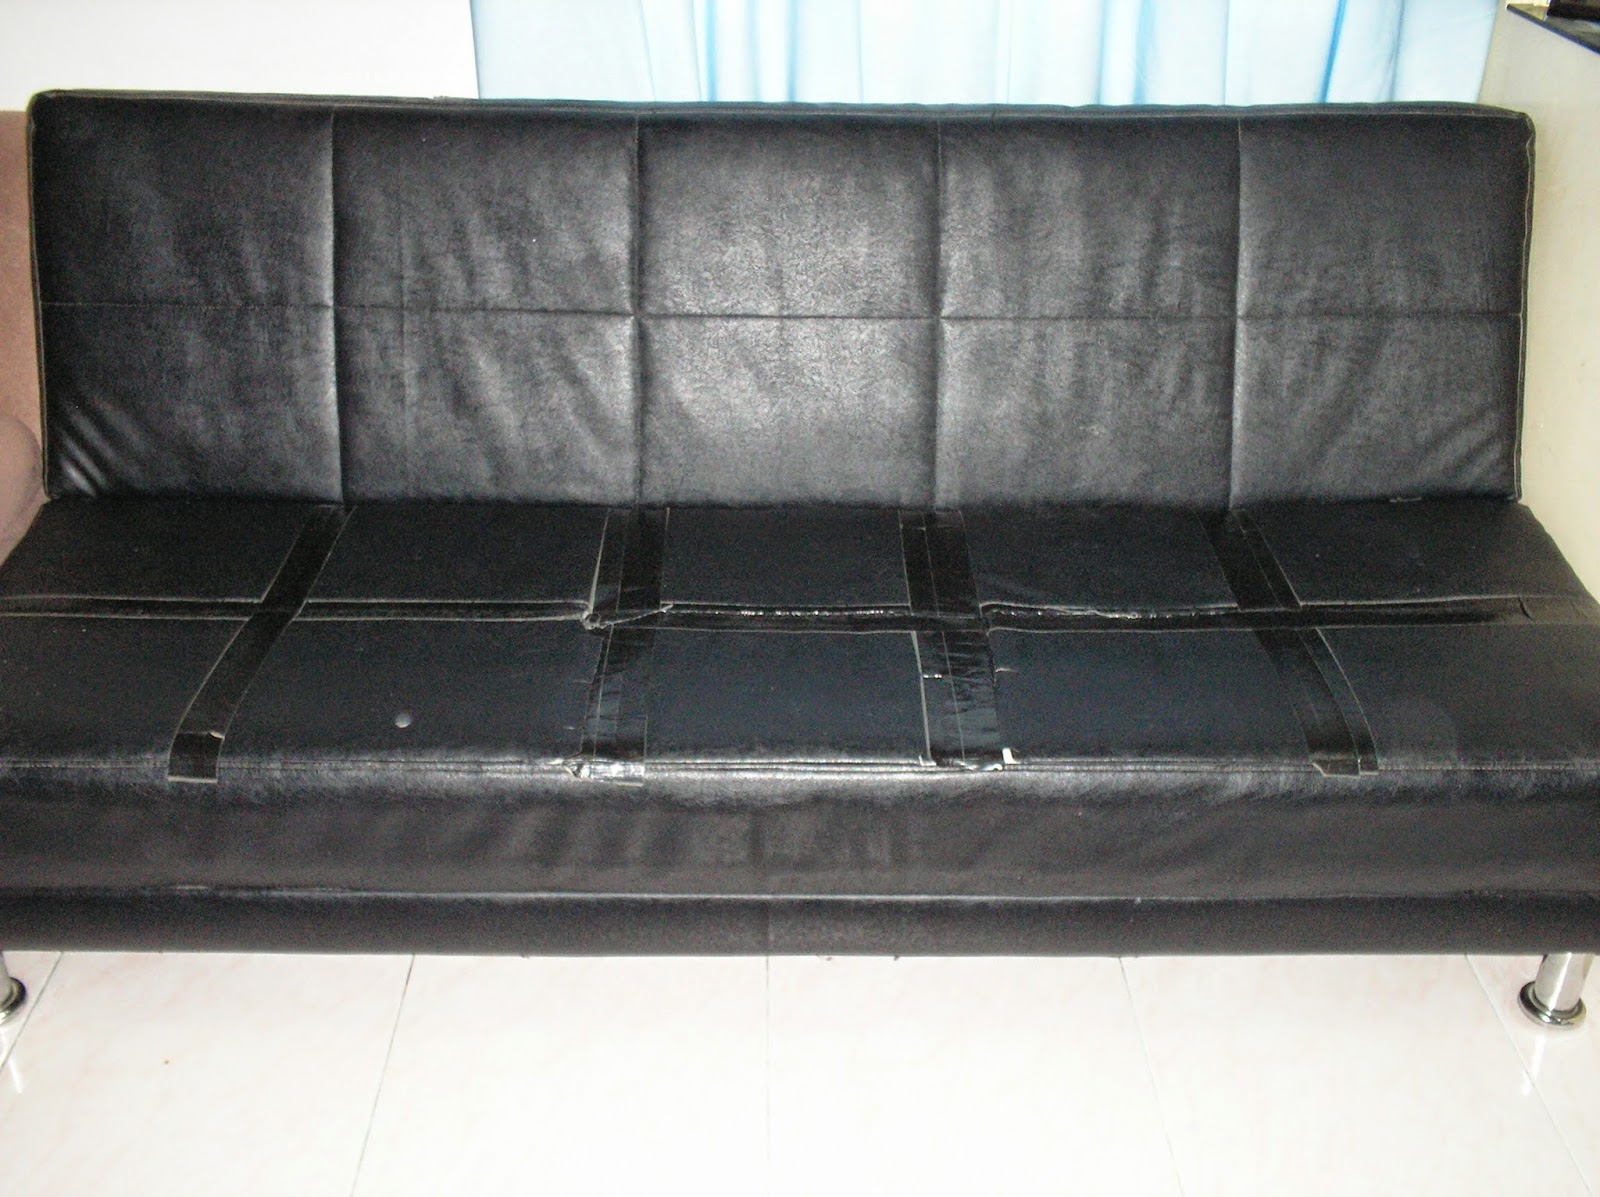 Sofa Repair In Johor Bahru Red Blue Rug My Creatives Zone D I Y N Recycle Makeover Lama